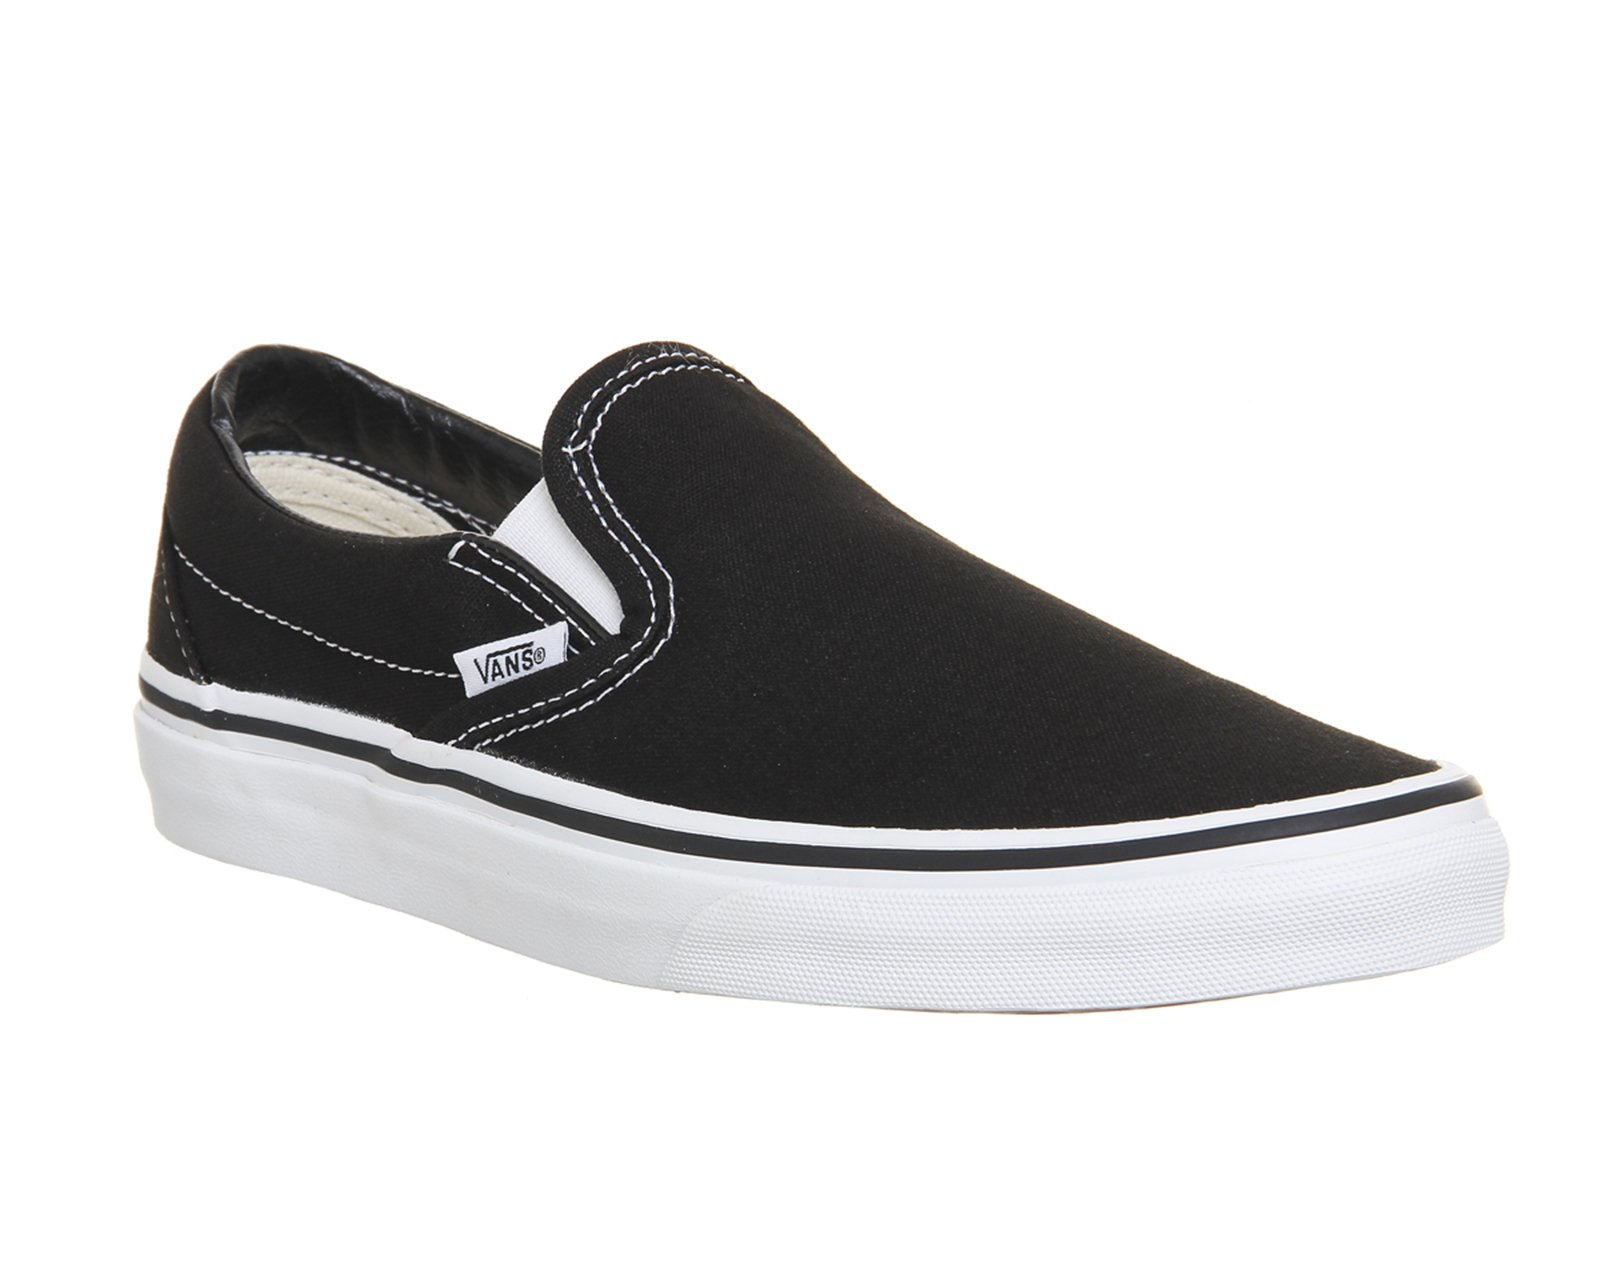 9d94d6b54aae Sentinel Mens Vans Classic Slip On Trainers Black White Trainers Shoes